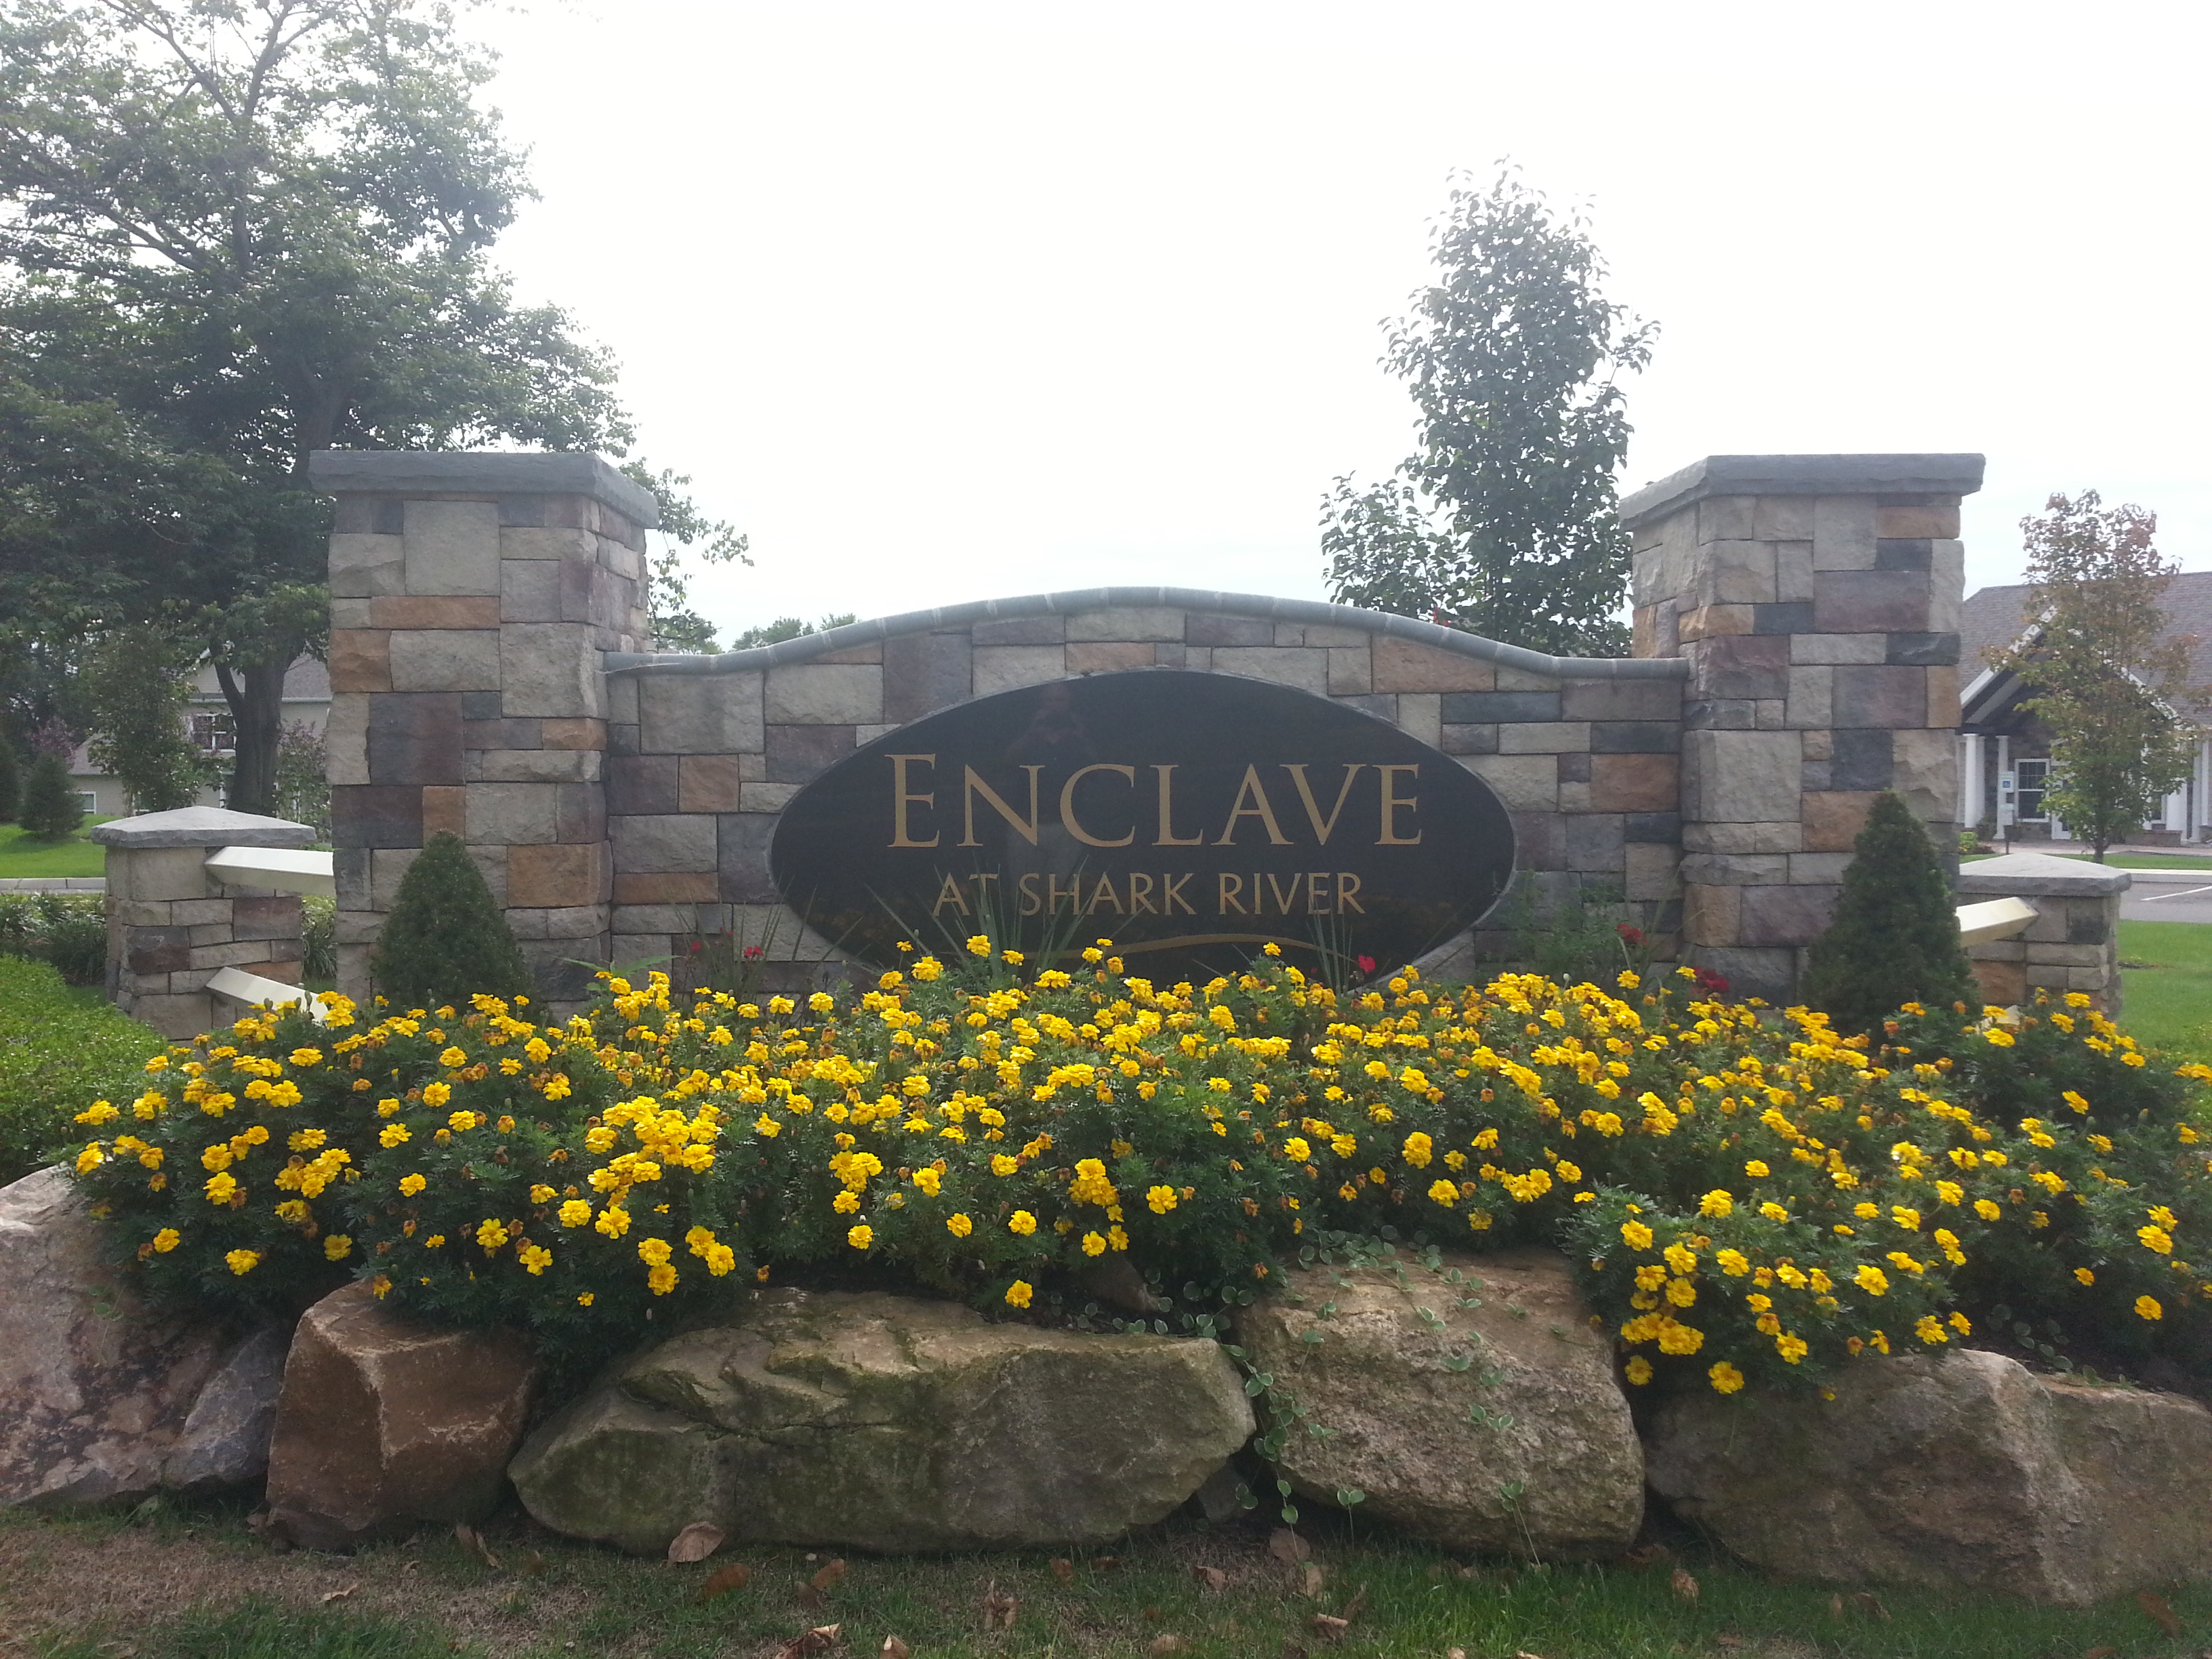 The Enclave at Shark River is an age restricted, 55+, active adult community in Tinton Falls NJ